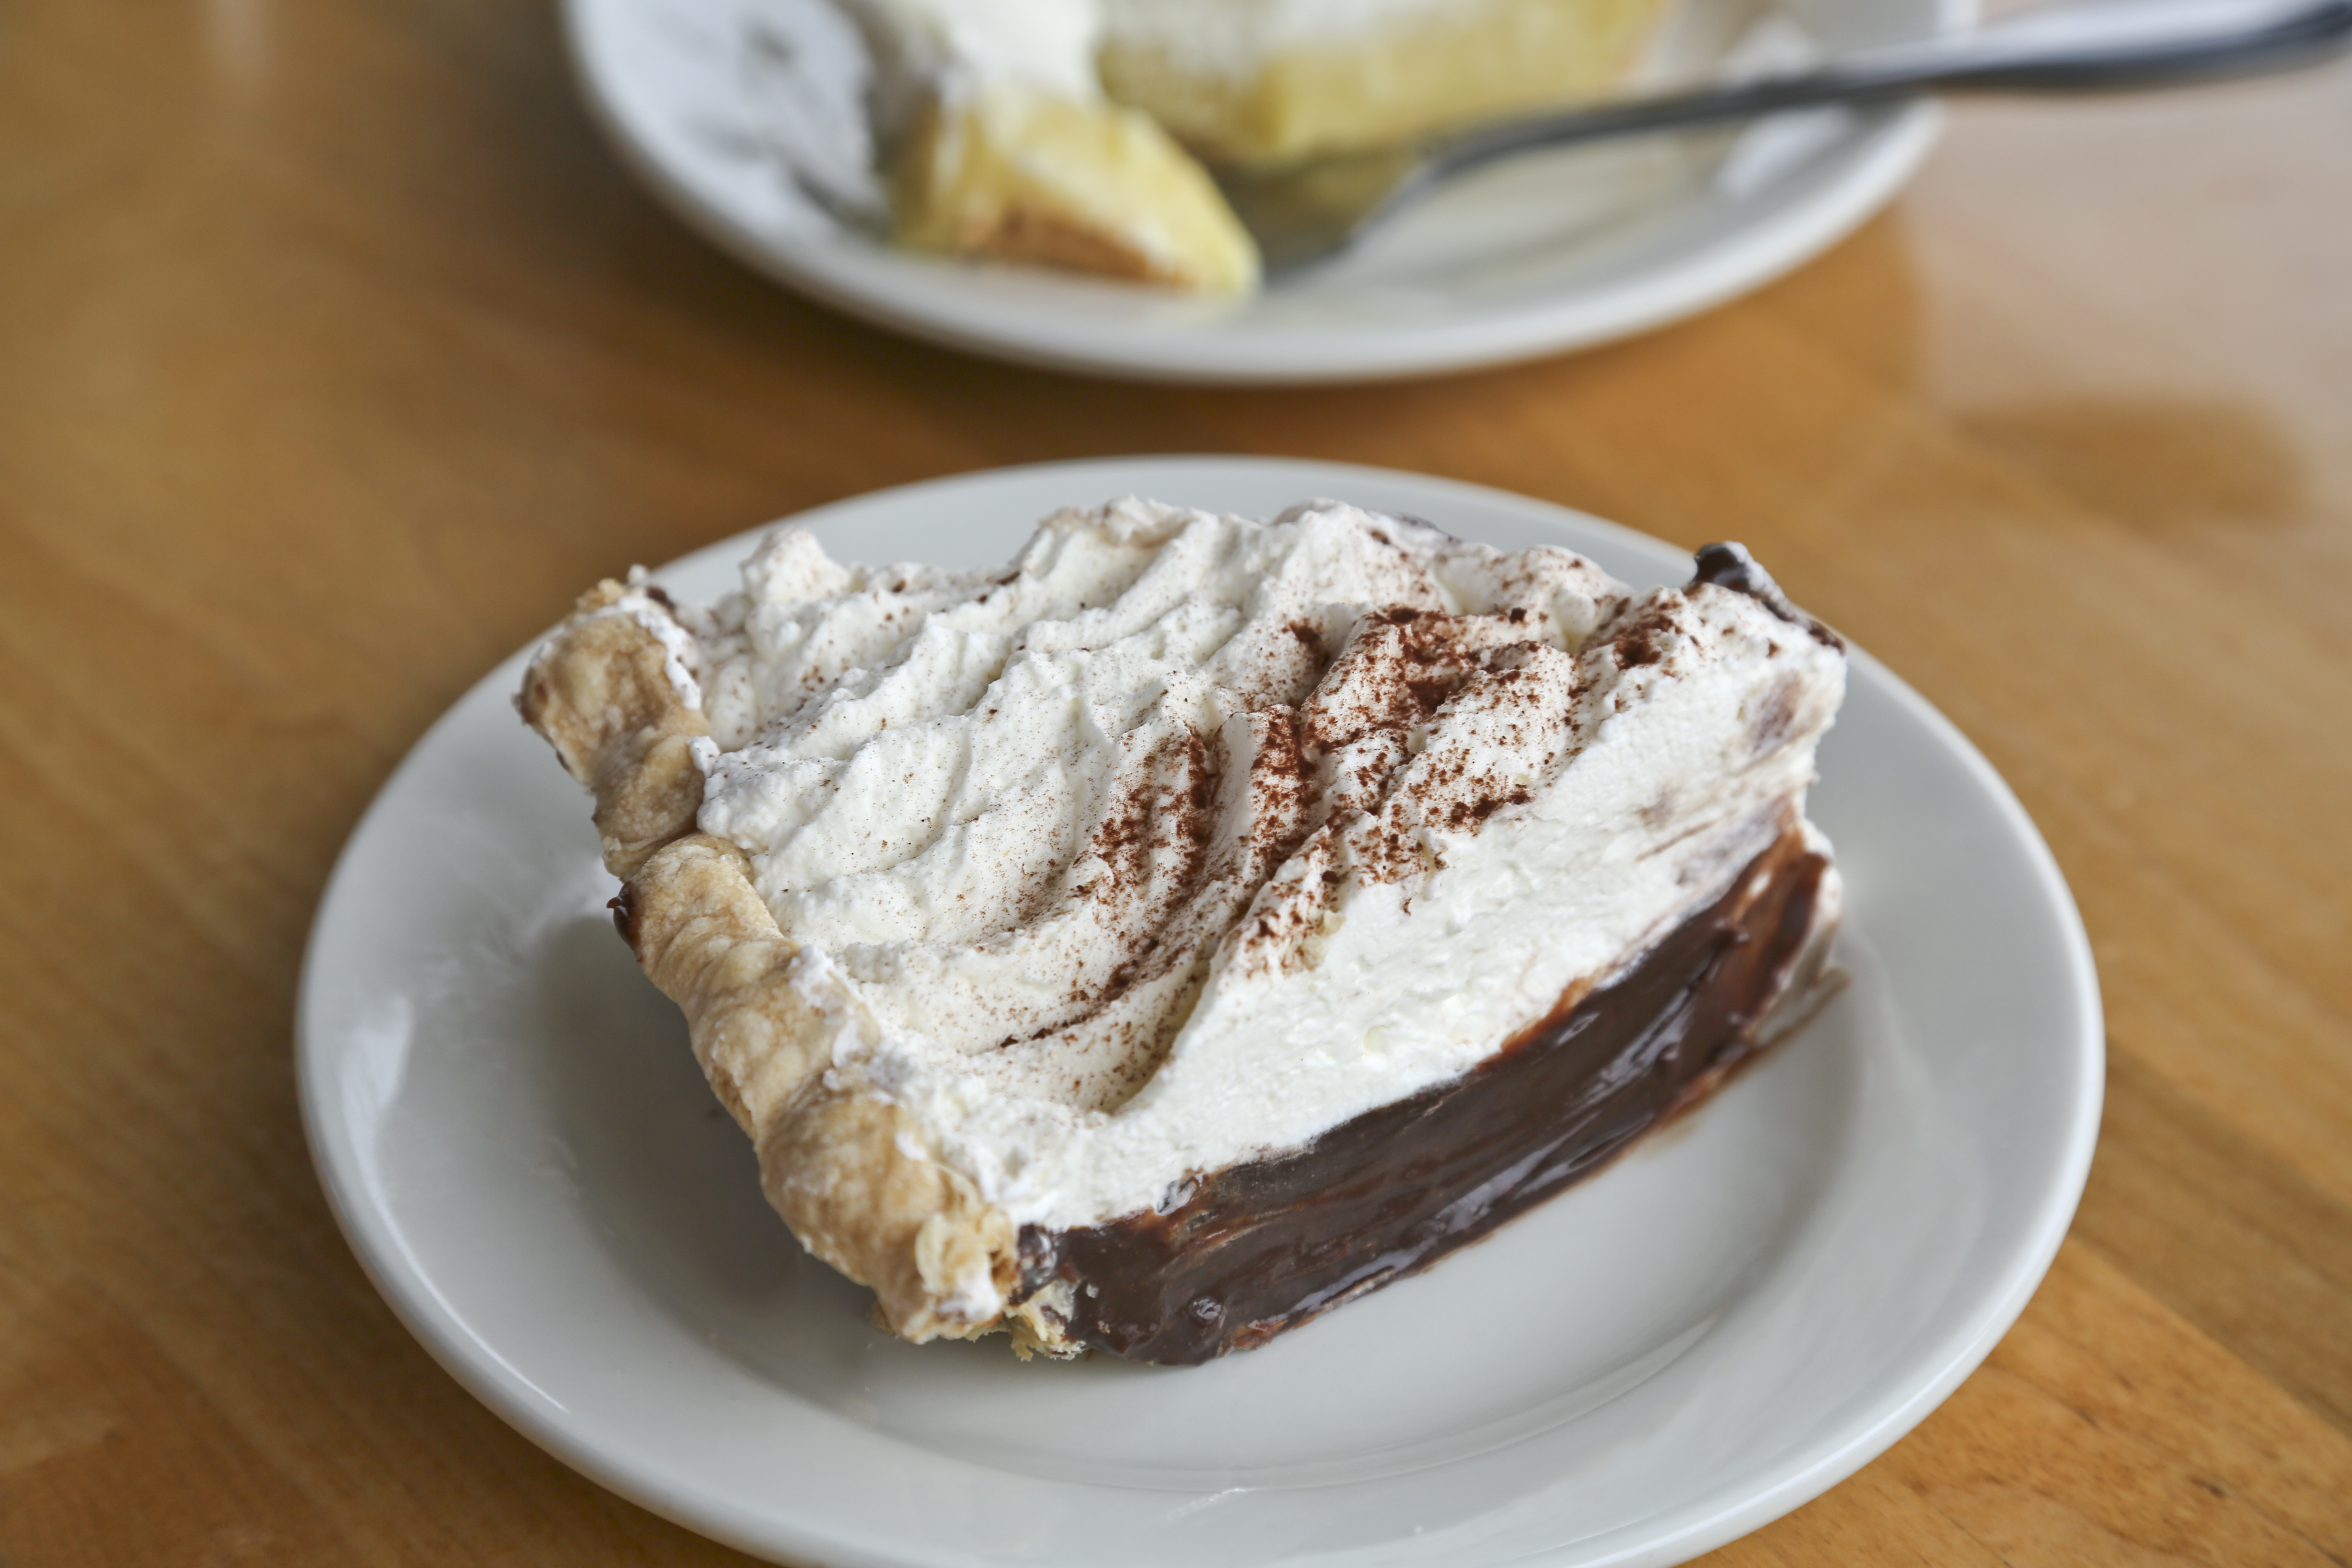 https://alabama-travel.s3.amazonaws.com/partners-uploads/photo/image/549b0f56c913c76ecd000048/_012_jnn_chocolate_pie_horiz.jpg